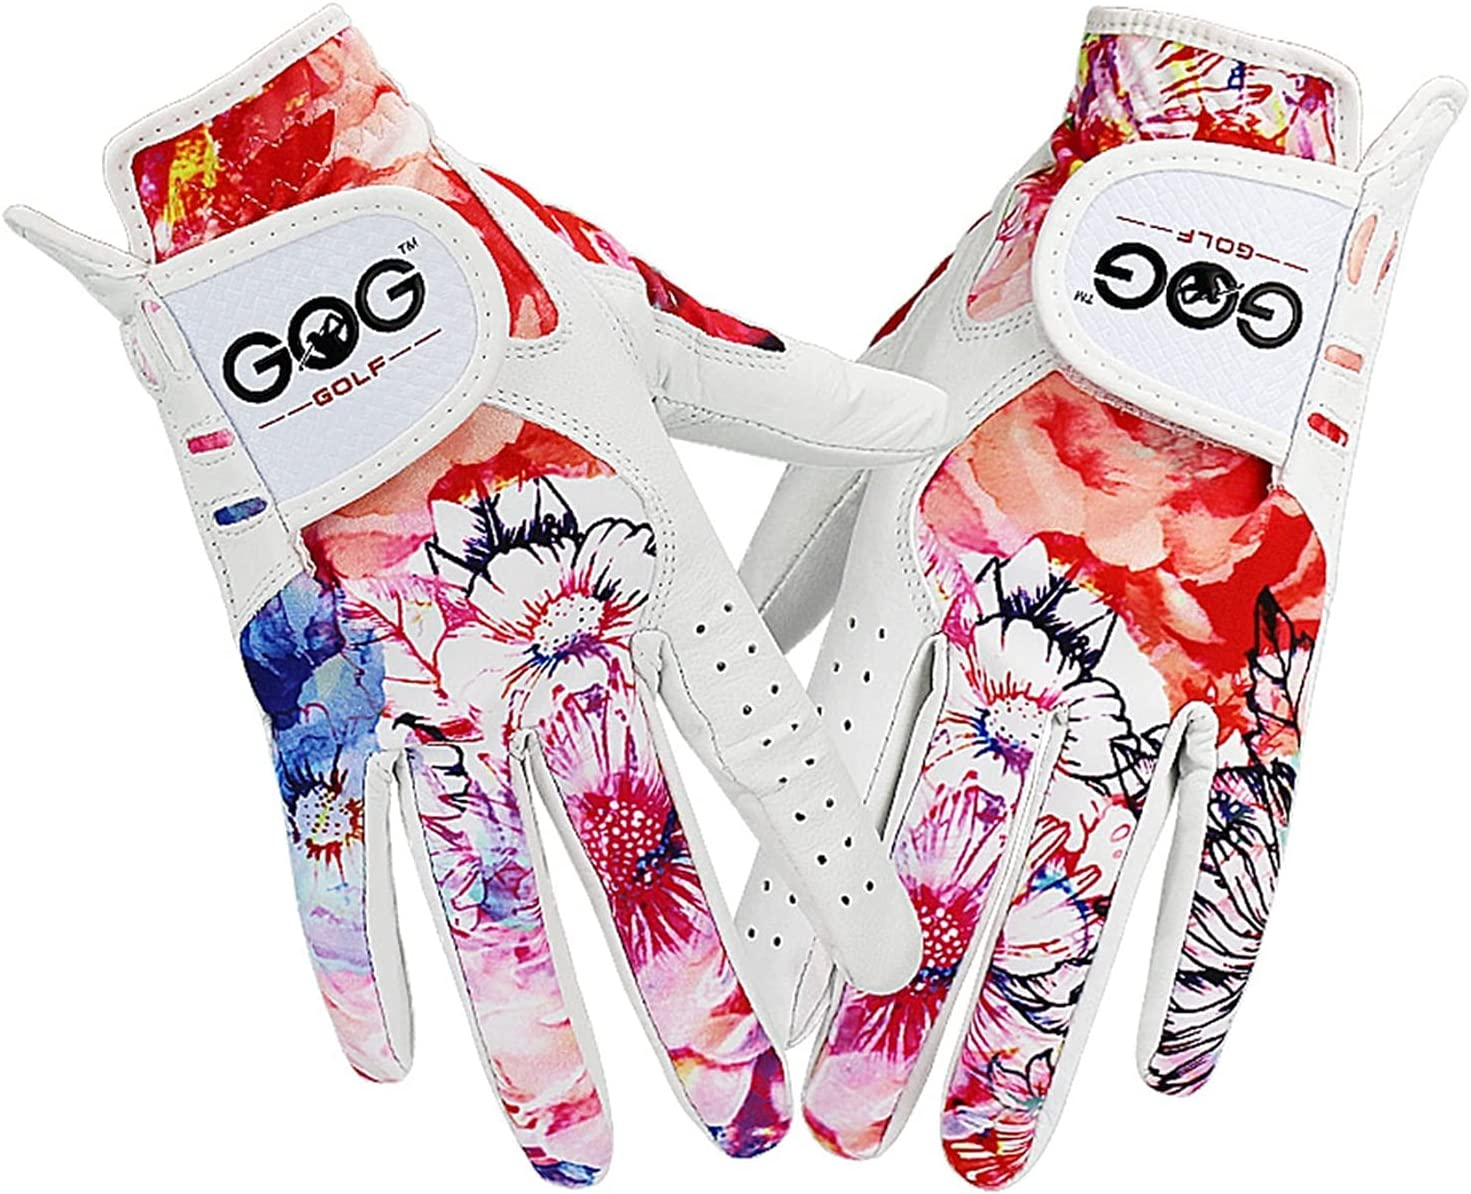 ZhiCai Free shipping on posting reviews Golf Glove Women Sheepskin Color Printed Leather High quality Pattern